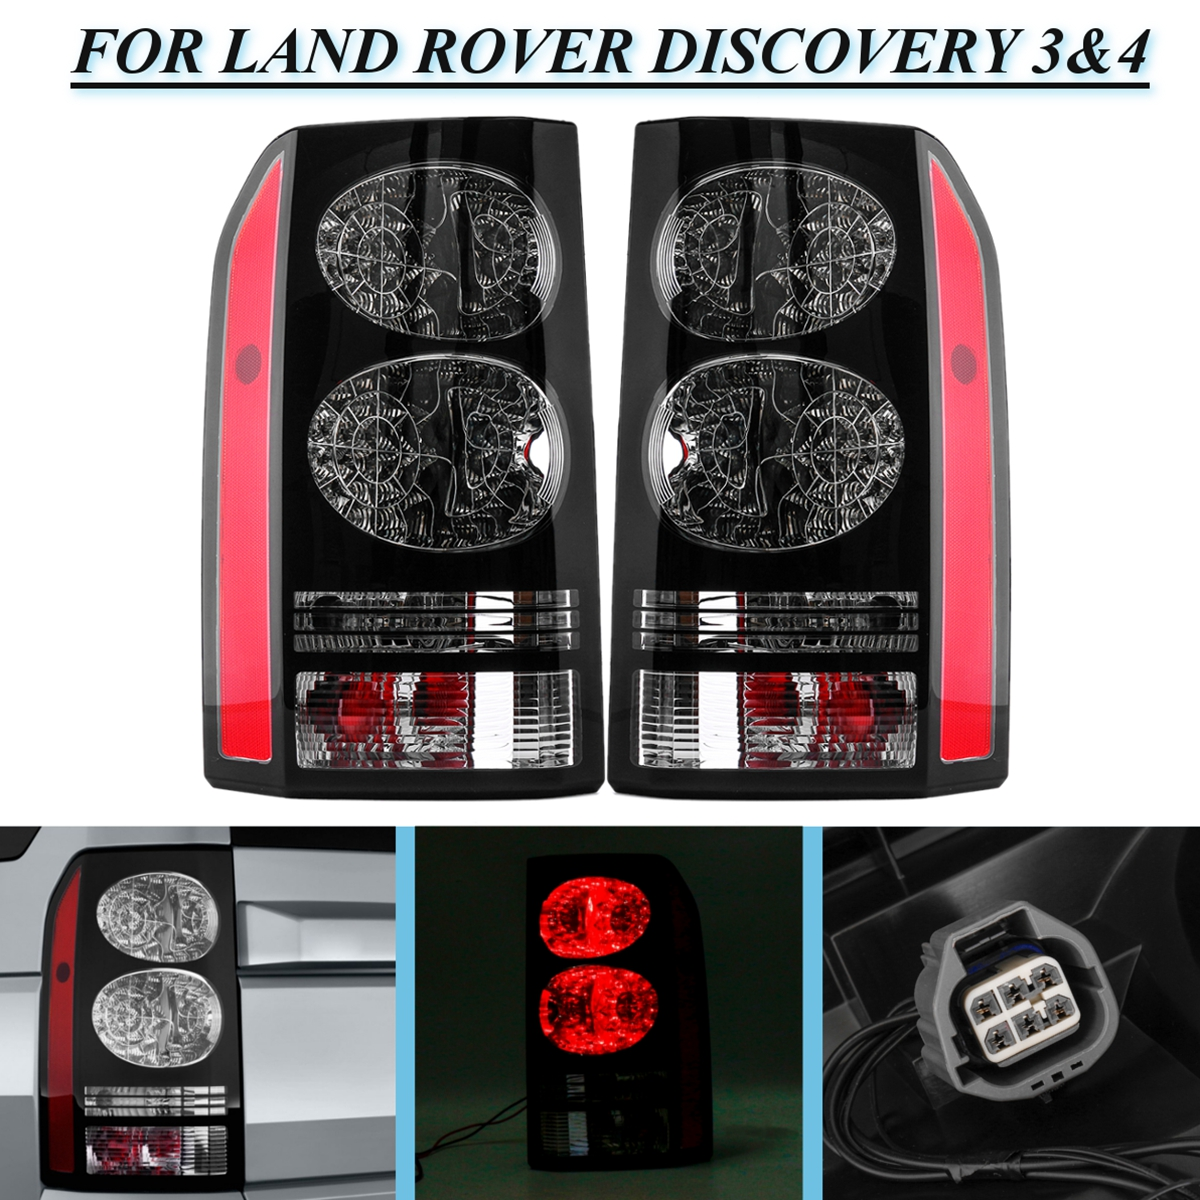 for LAND ROVER DISCOVERY 3&4 04~14 2pcs Rear Car Styling Head Taillight Tail Light Lamp Brake Lights Bumper Reflector Stop Light high quanlity rear bumper brake light tail light stop light taillight taillamp for chevrolete captiva 2008 2009 2010